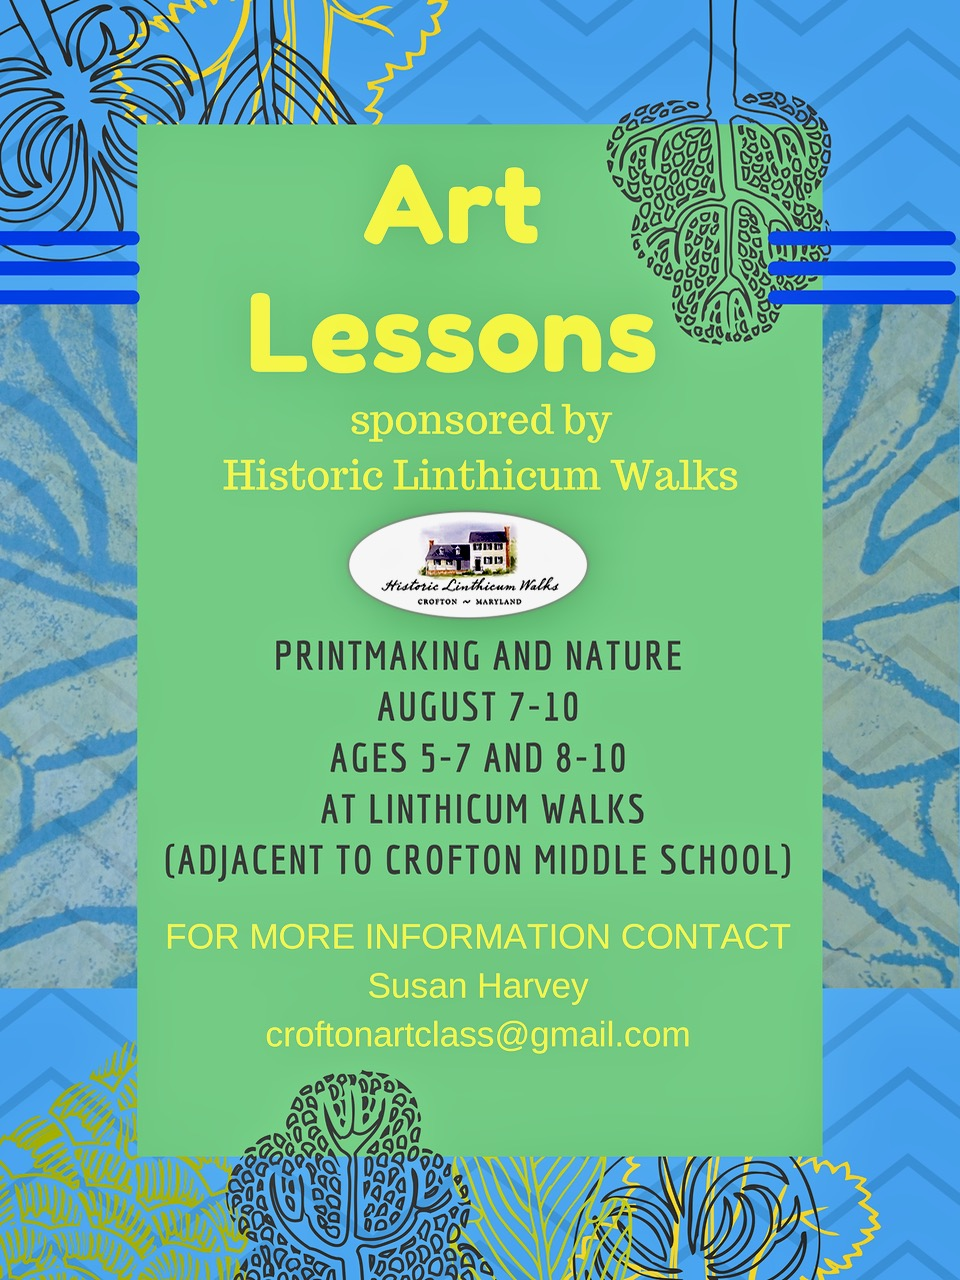 Printing and Nature Art Classes for Children